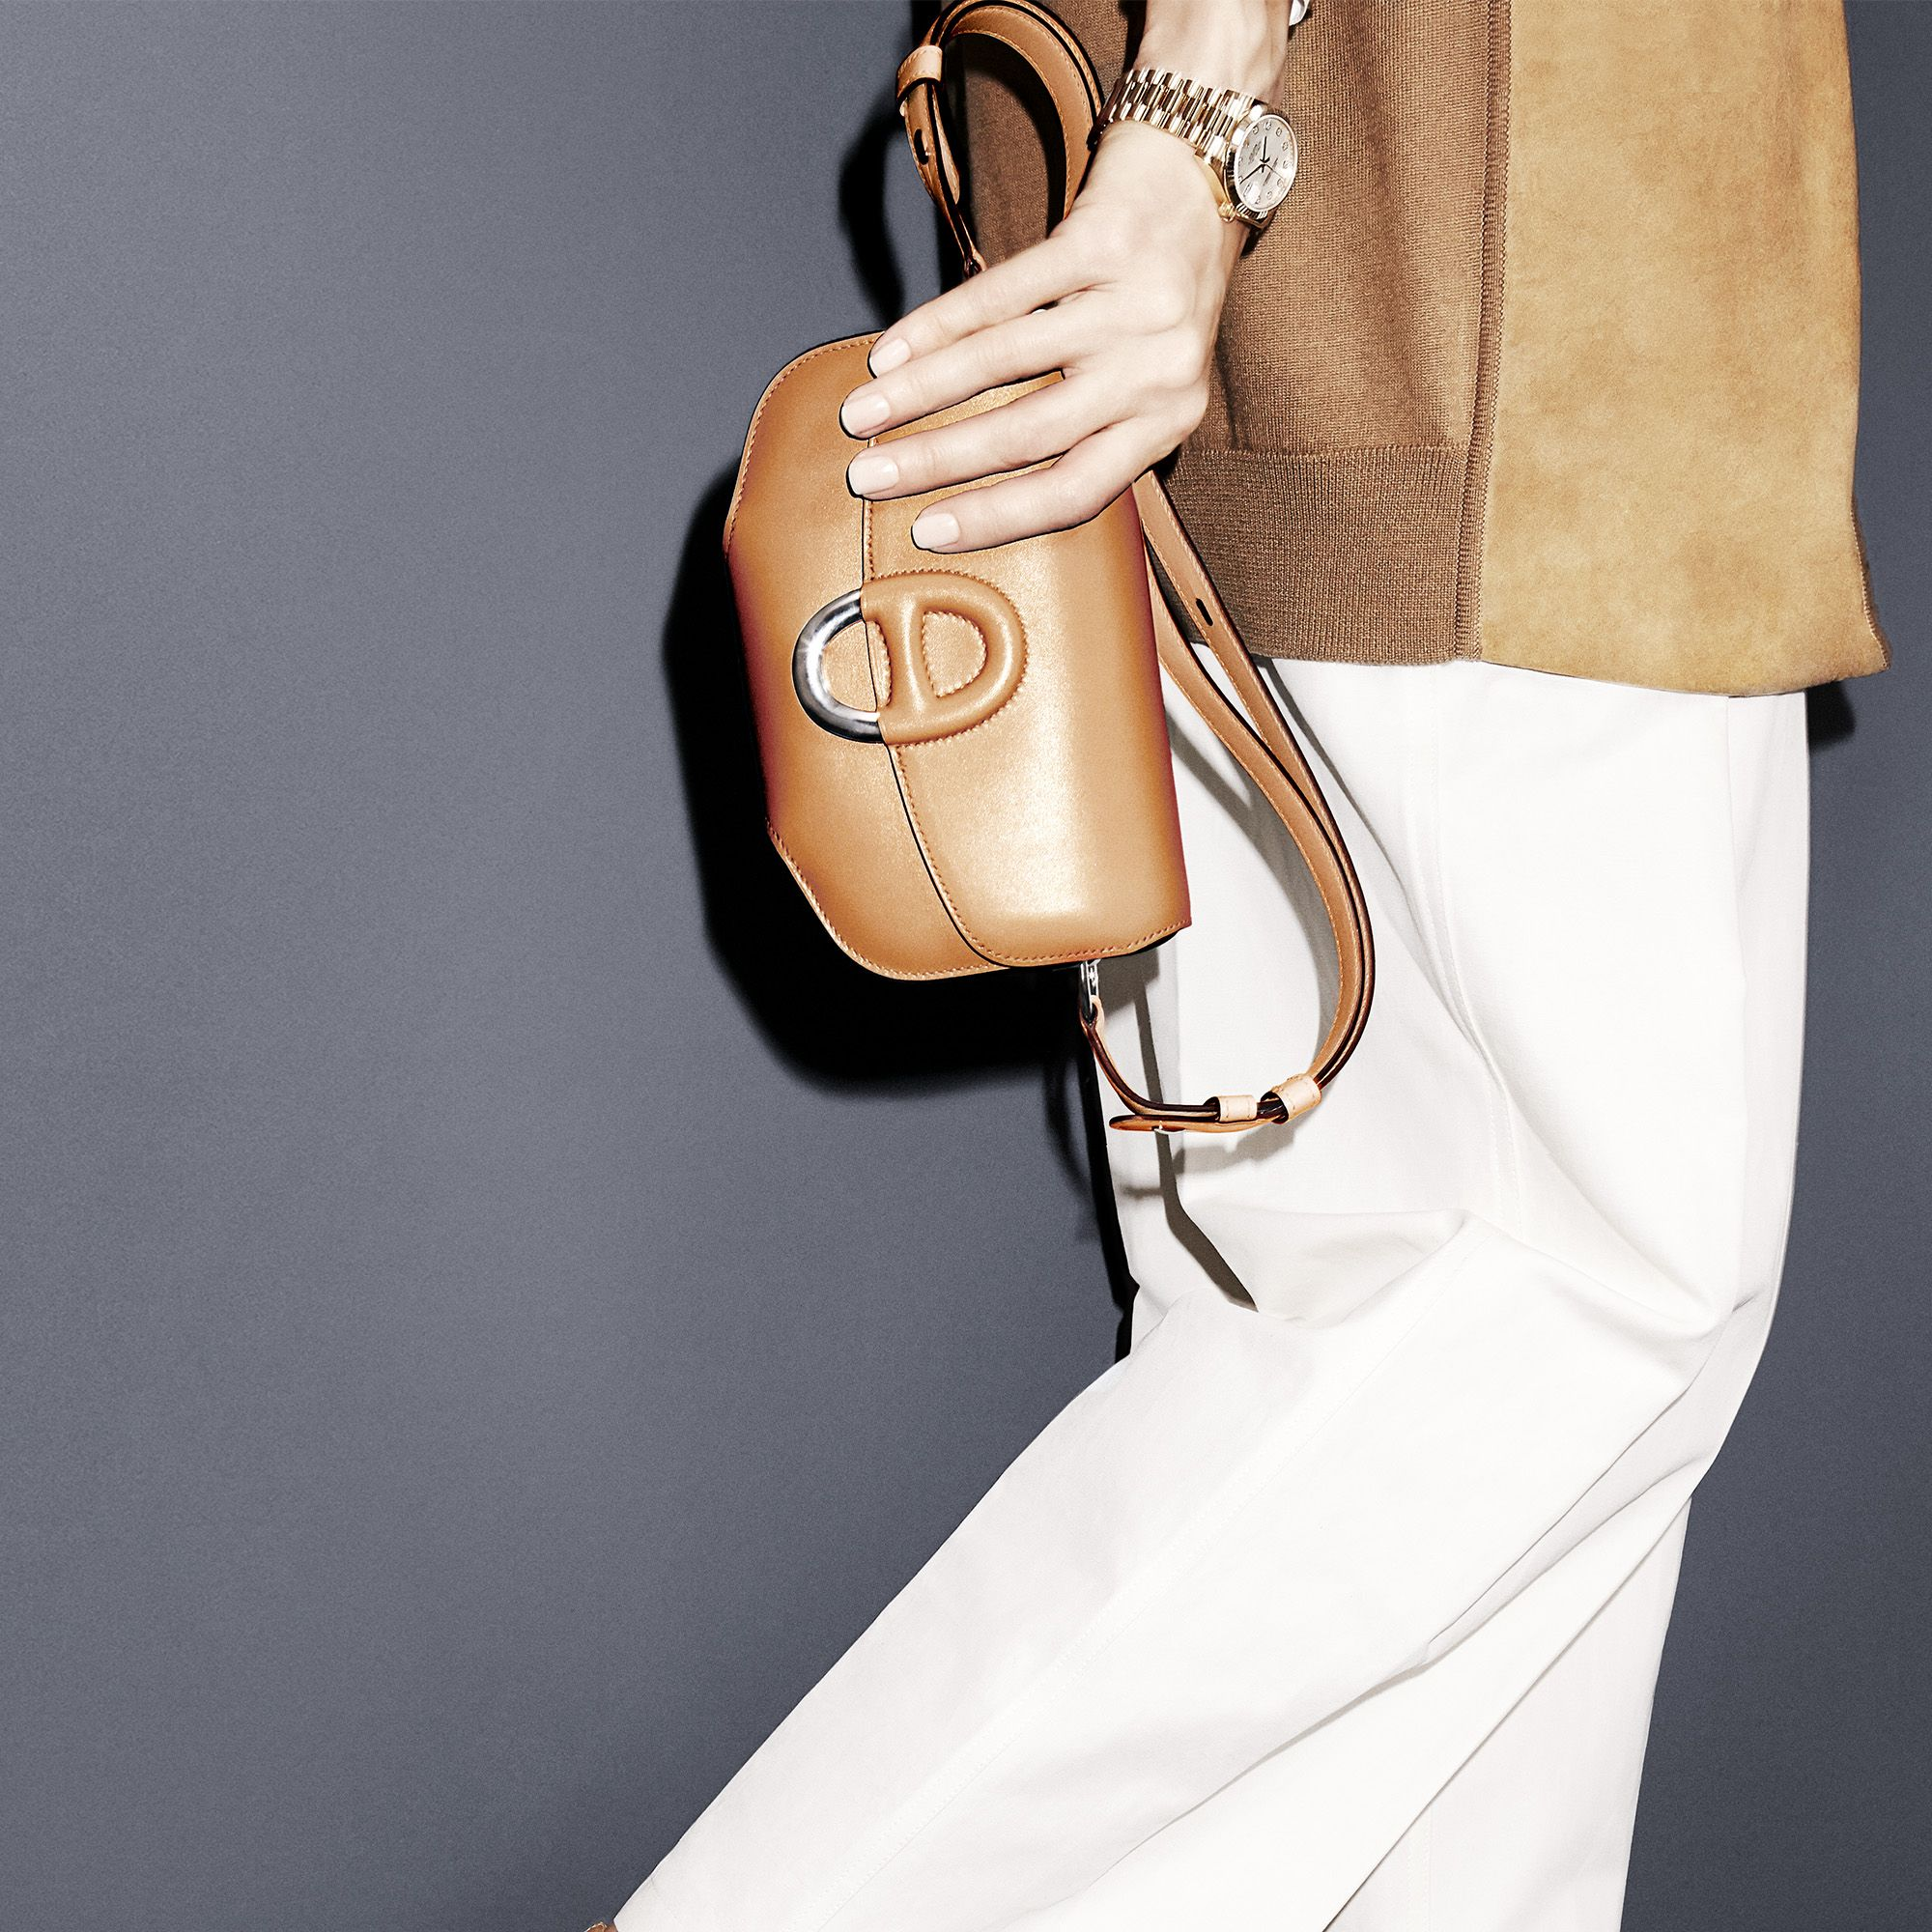 """Get a lift&nbsp&#x3B;in the season's must-have shoe paired with these&nbsp&#x3B;generously proportioned&nbsp&#x3B;trousers that&nbsp&#x3B;are spring-ready in white.<strong>Hermès</strong> cardigan, $4,900,&nbsp&#x3B;pants, $1,475,&nbsp&#x3B;bag, $8,050&nbsp&#x3B;and sandals, $990, 800-441-4488&#x3B;&nbsp&#x3B;<strong>Rolex</strong> watch, $31,200, <a href=""""http://www.rolex.com"""" target=""""_blank"""">rolex.com</a>.&nbsp&#x3B;"""